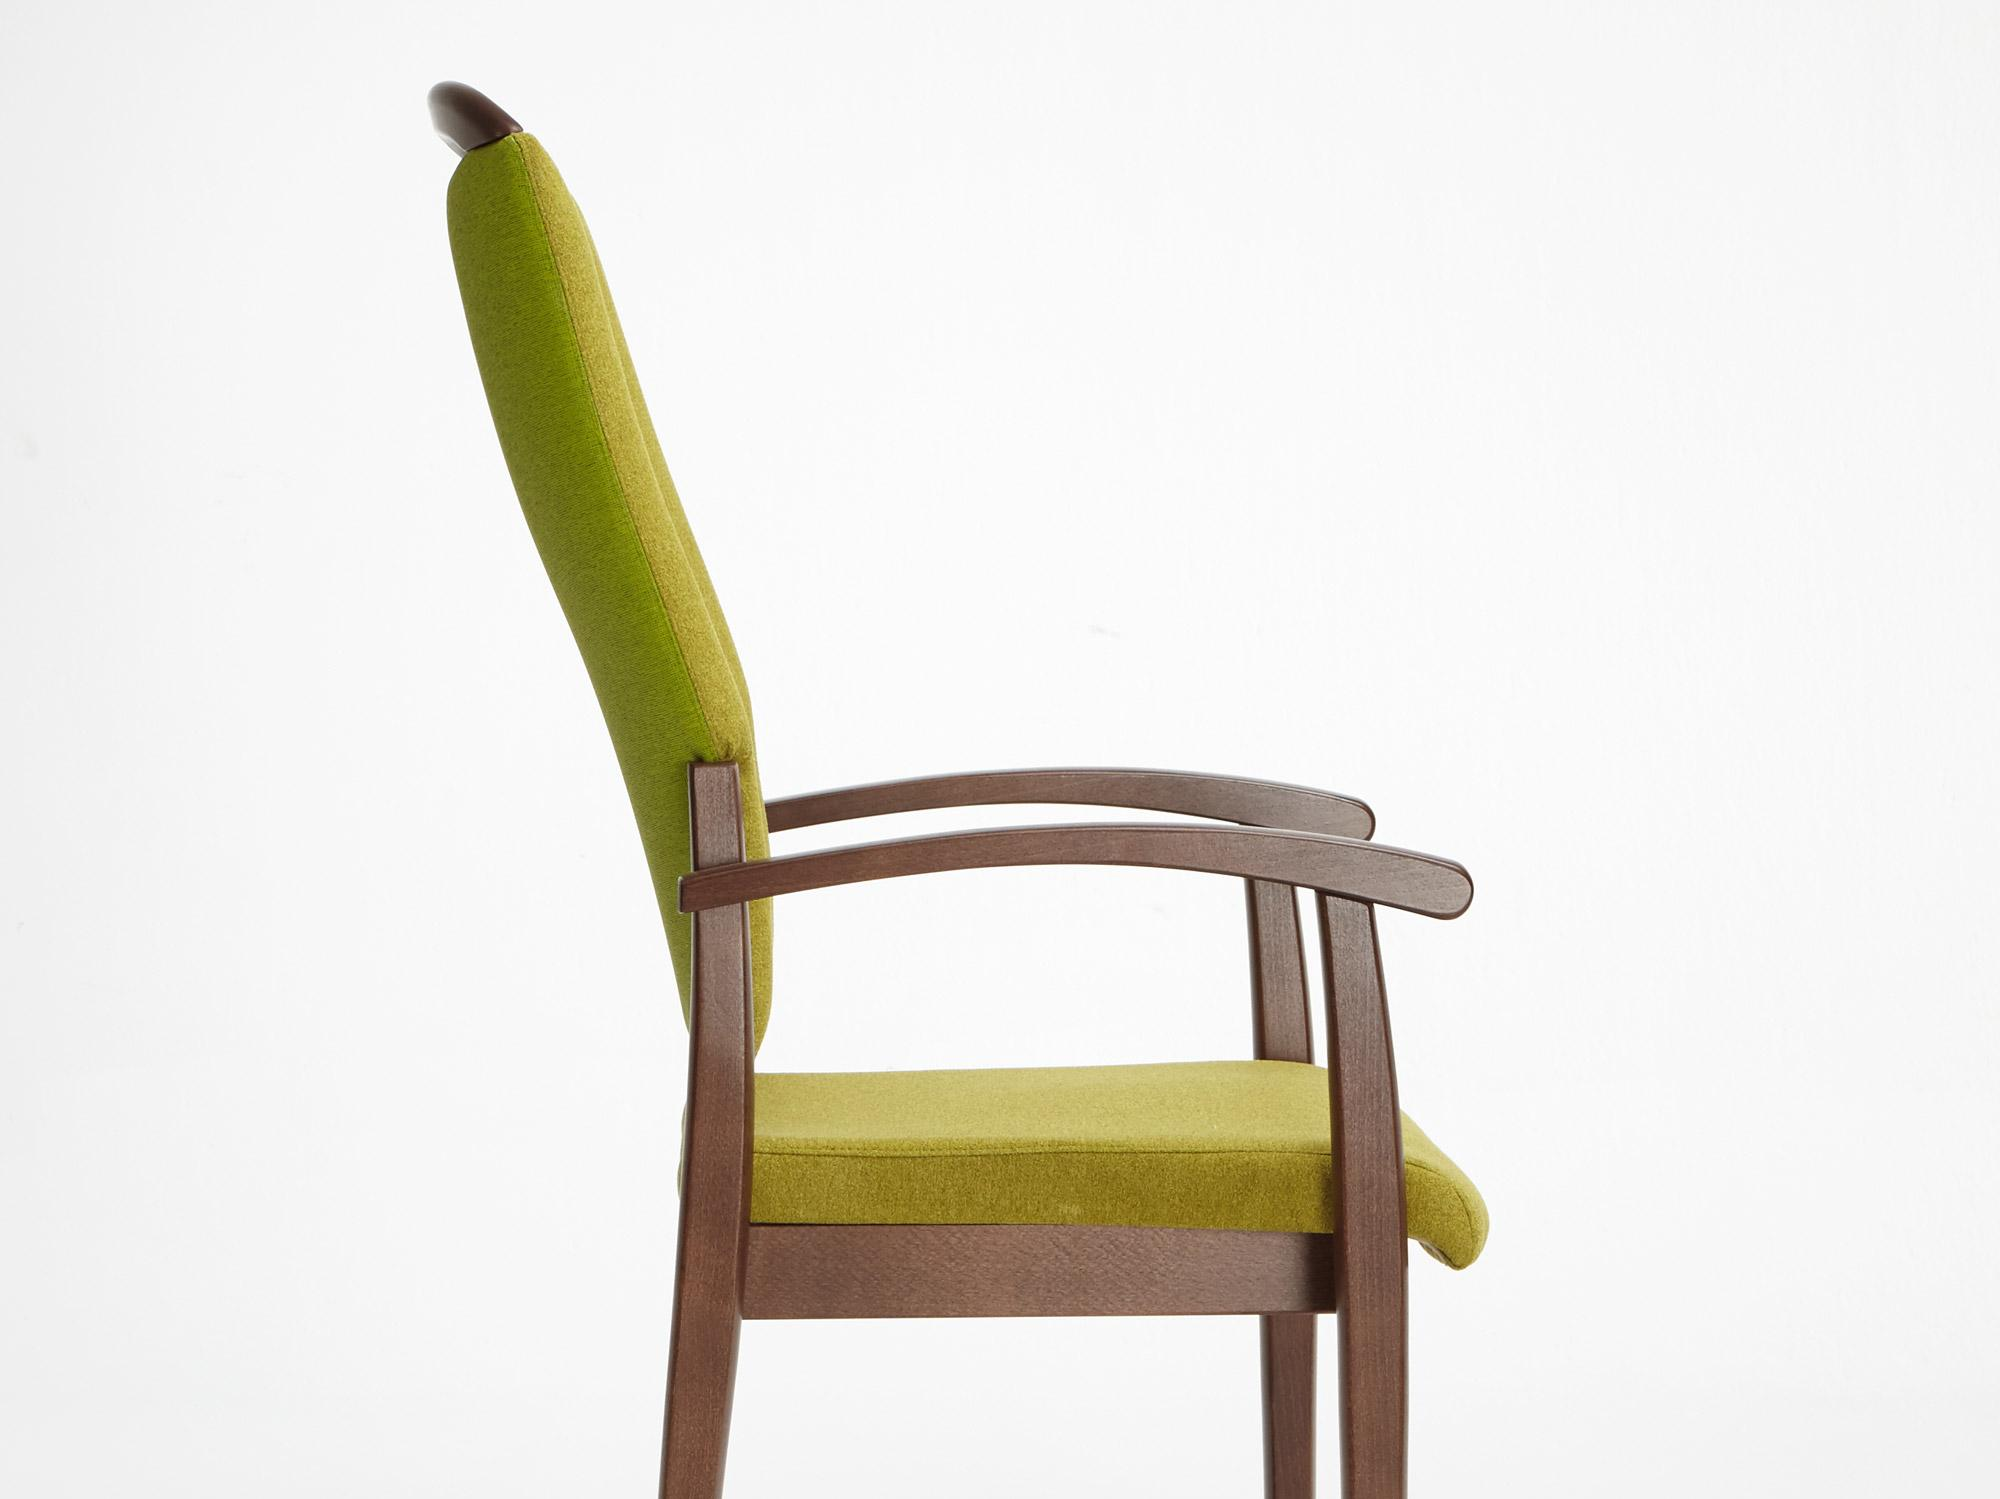 The Fena model as a high-back chair with handle